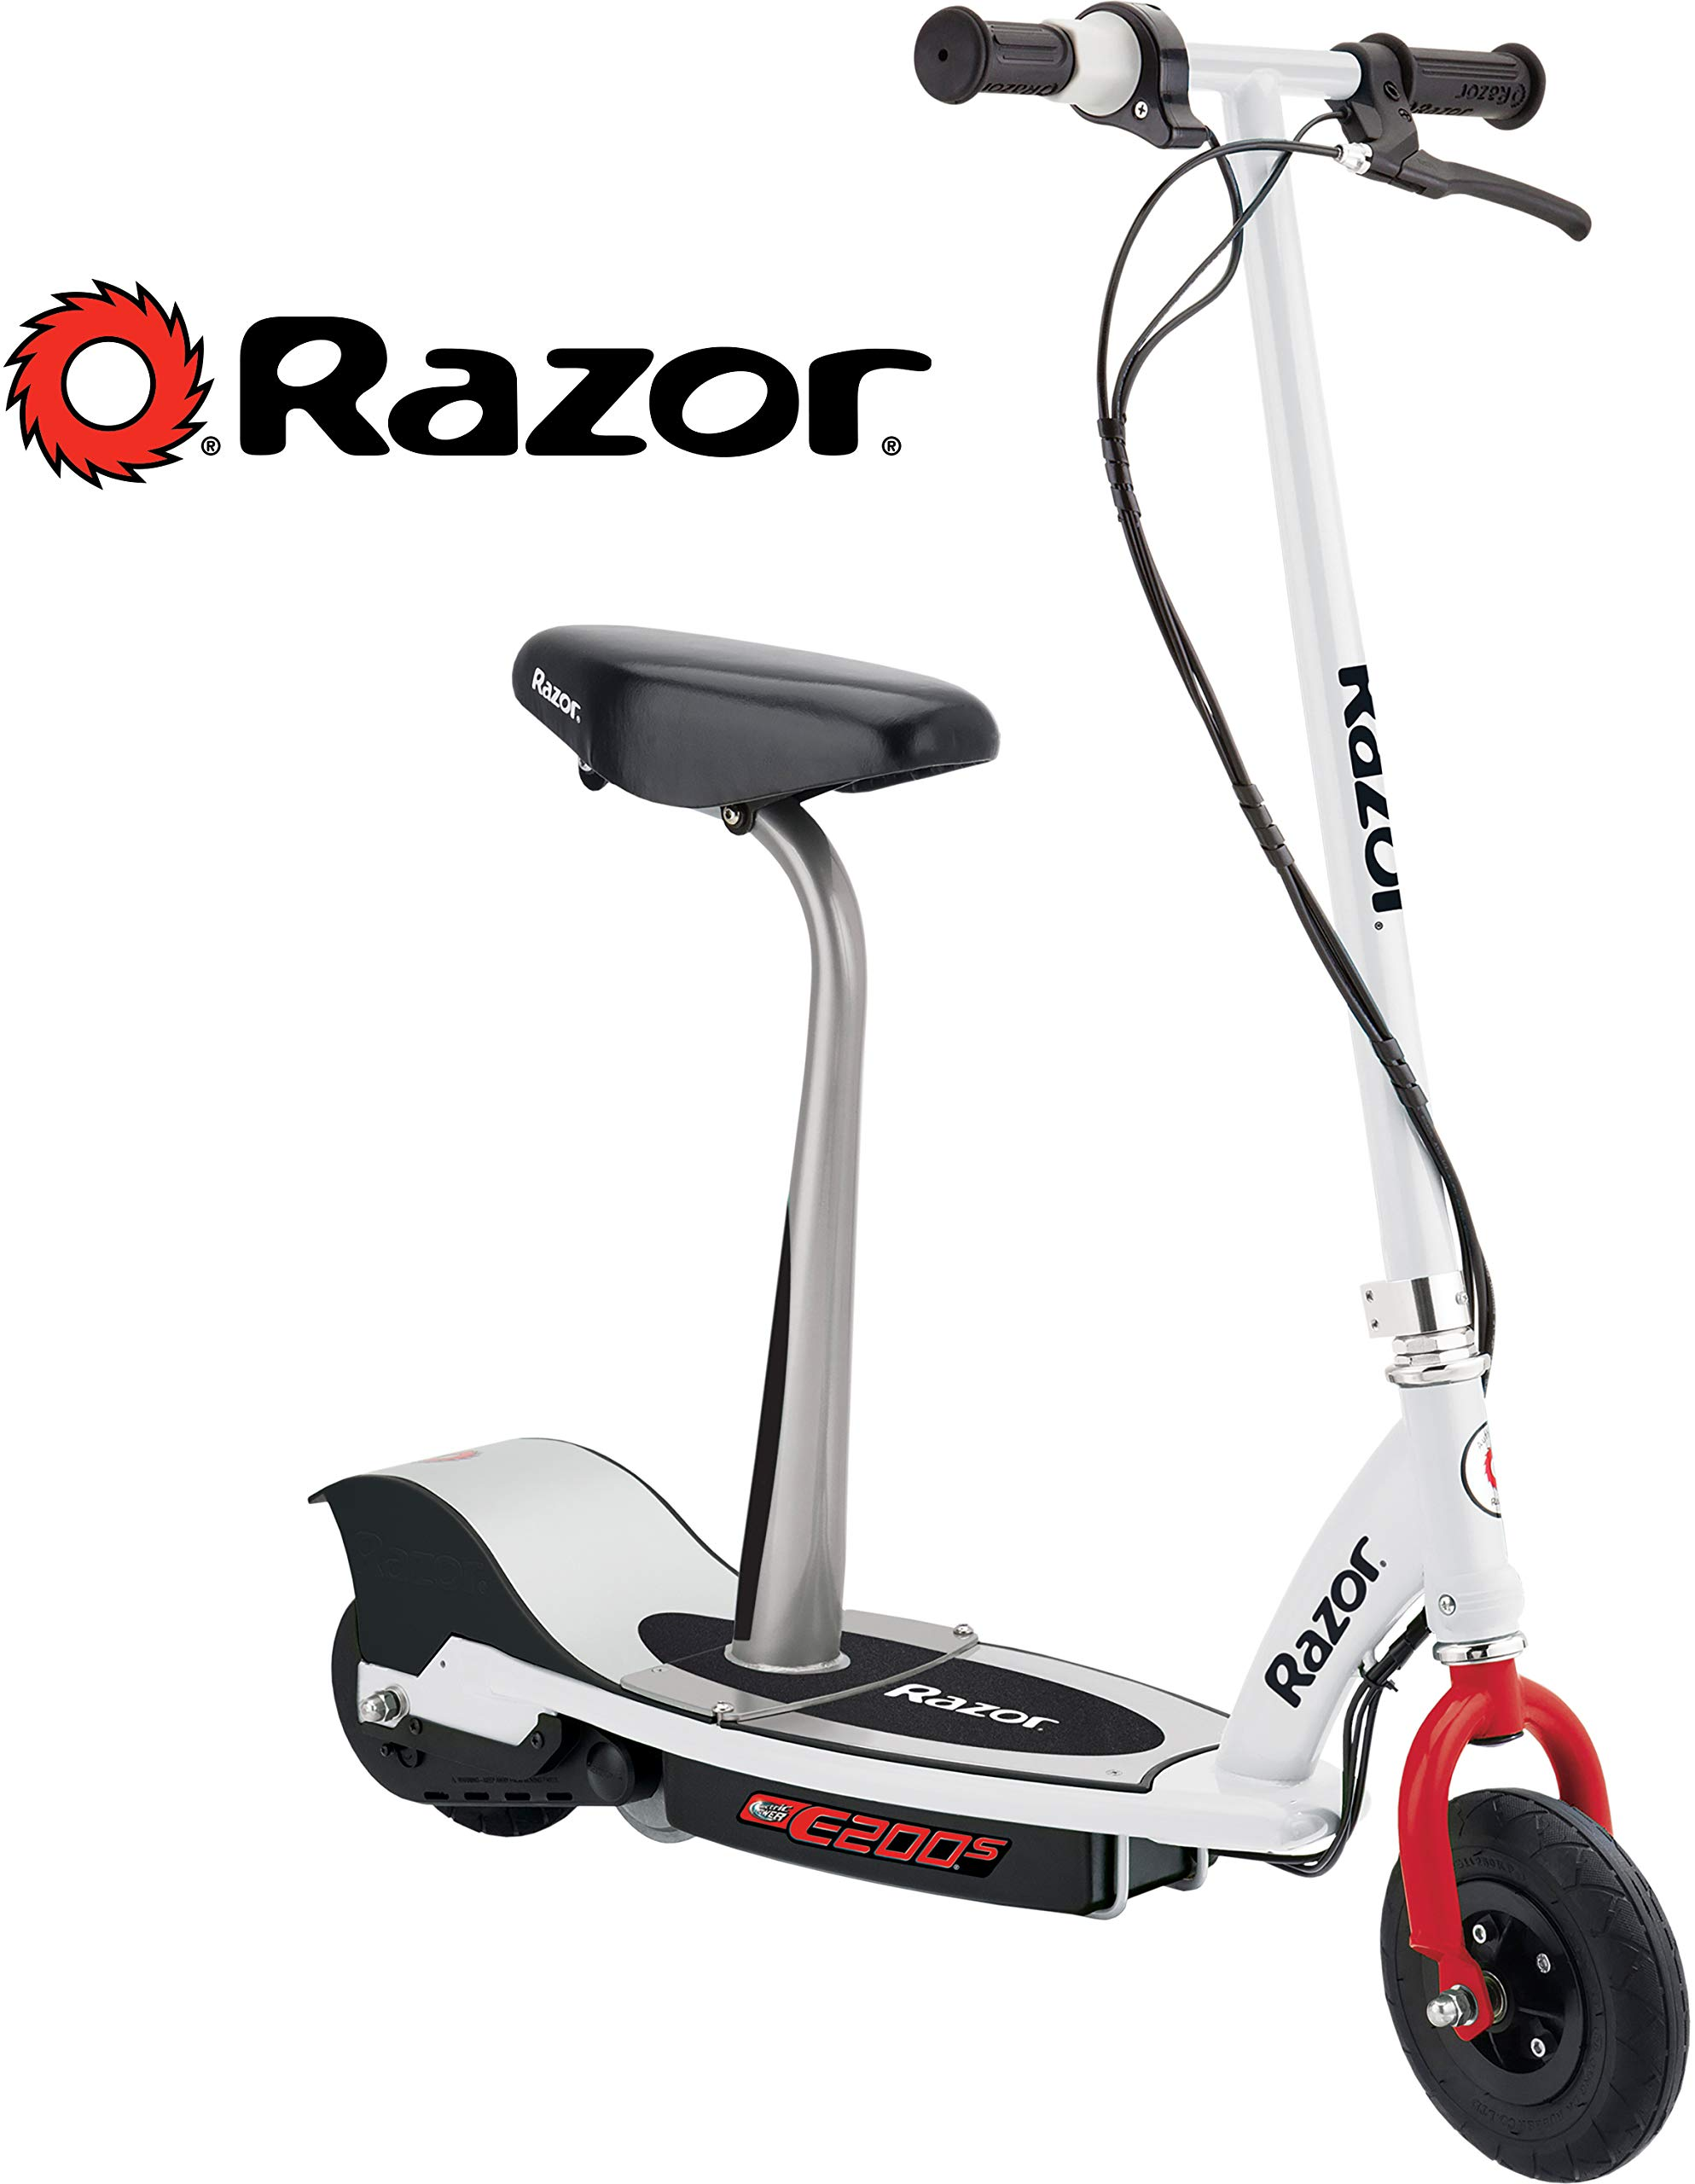 Razor E200S Seated Electric Scooter - White/Red by Razor